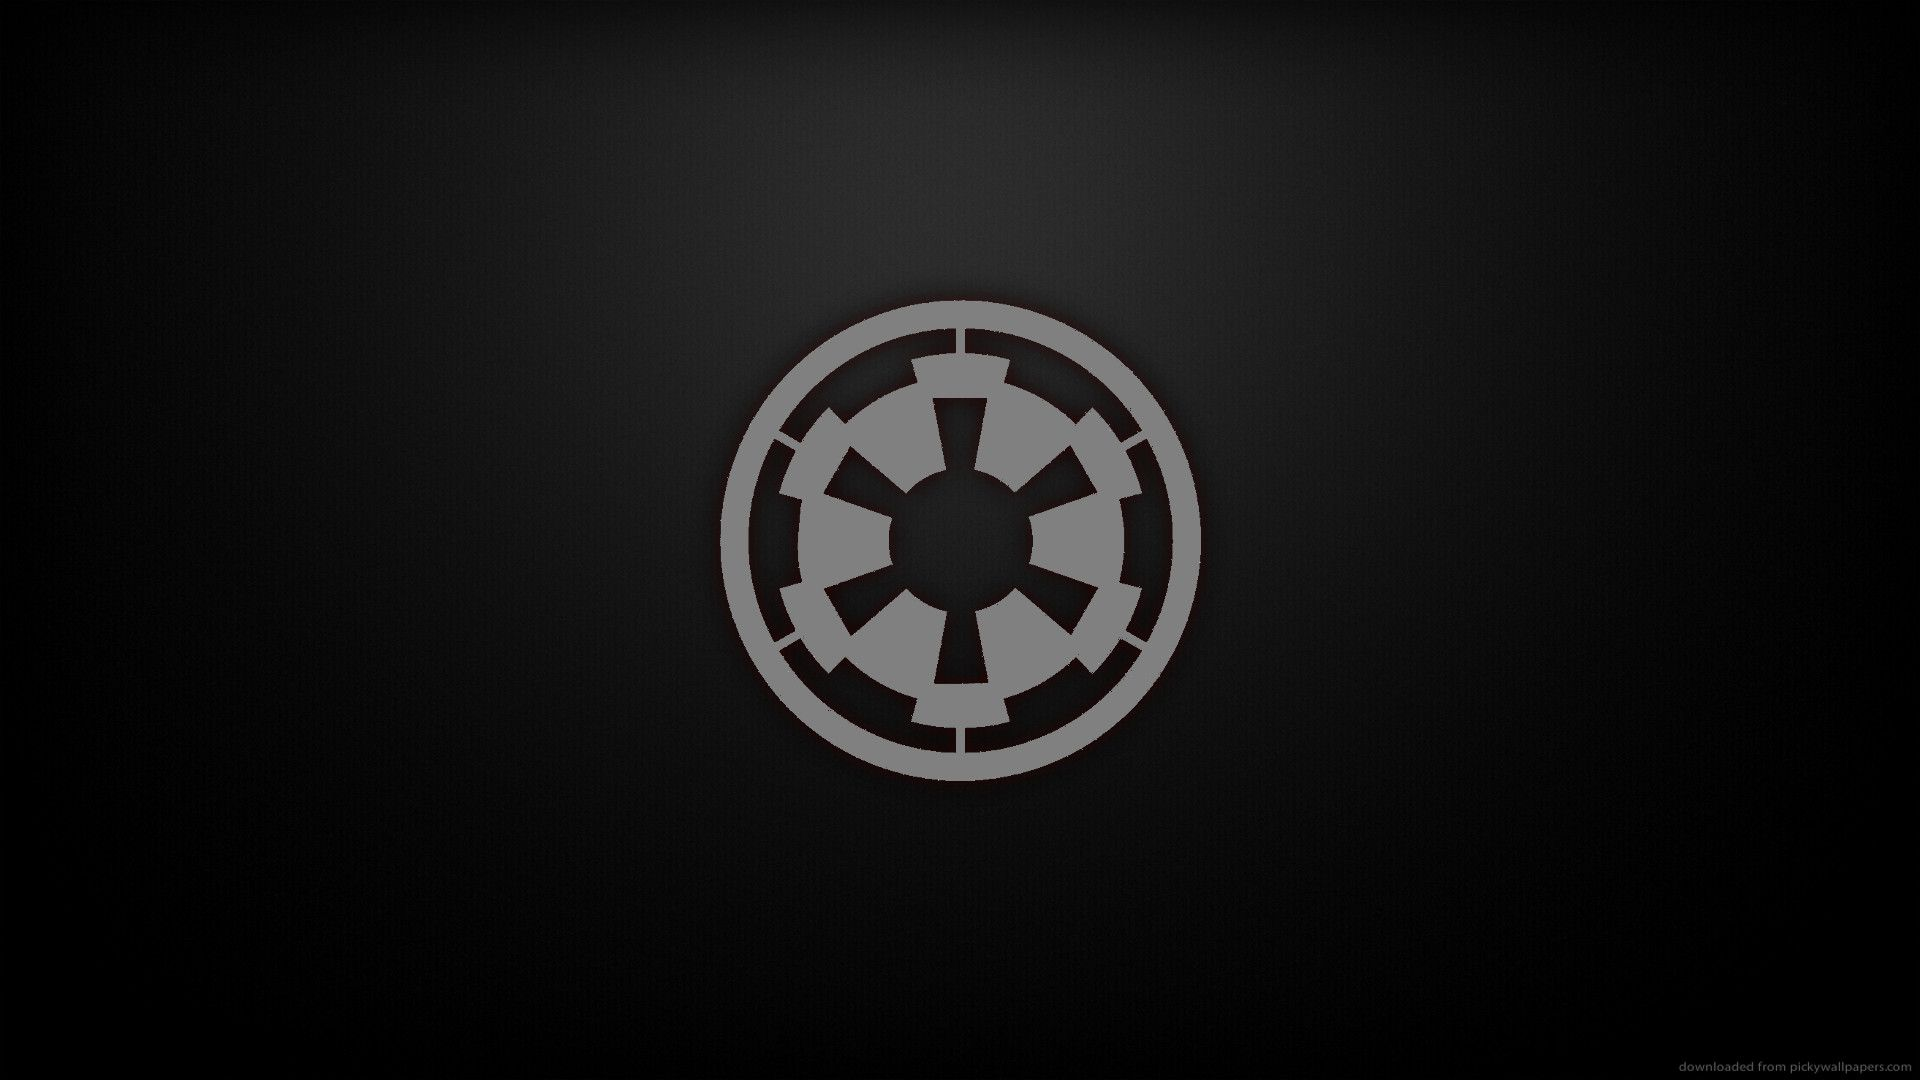 Star Wars Empire Wallpapers High Resolution Jedi Symbol Star Wars Empire Star Wars Wallpaper